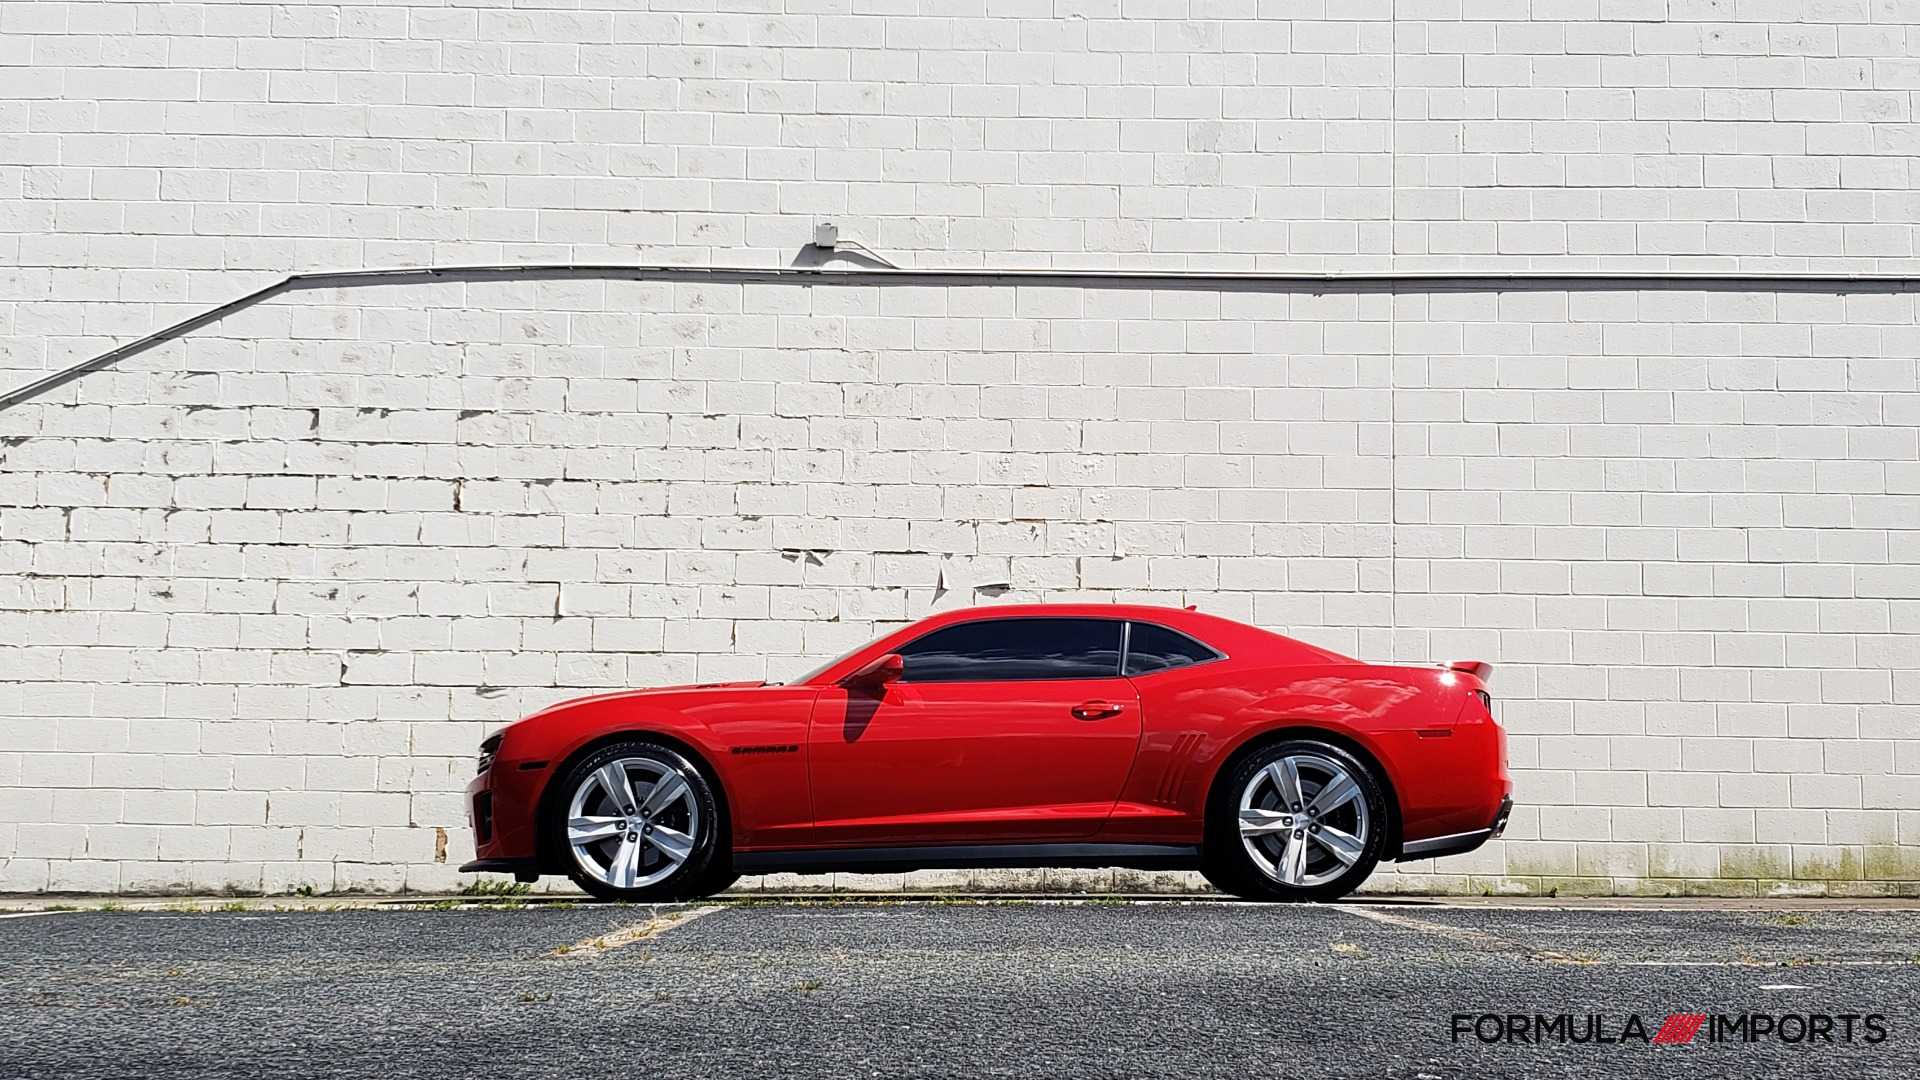 Used 2013 Chevrolet CAMARO ZL1 580HP / AUTO / NAV / BOSTON ACOUSTIC SND / REARVIEW for sale $40,995 at Formula Imports in Charlotte NC 28227 94